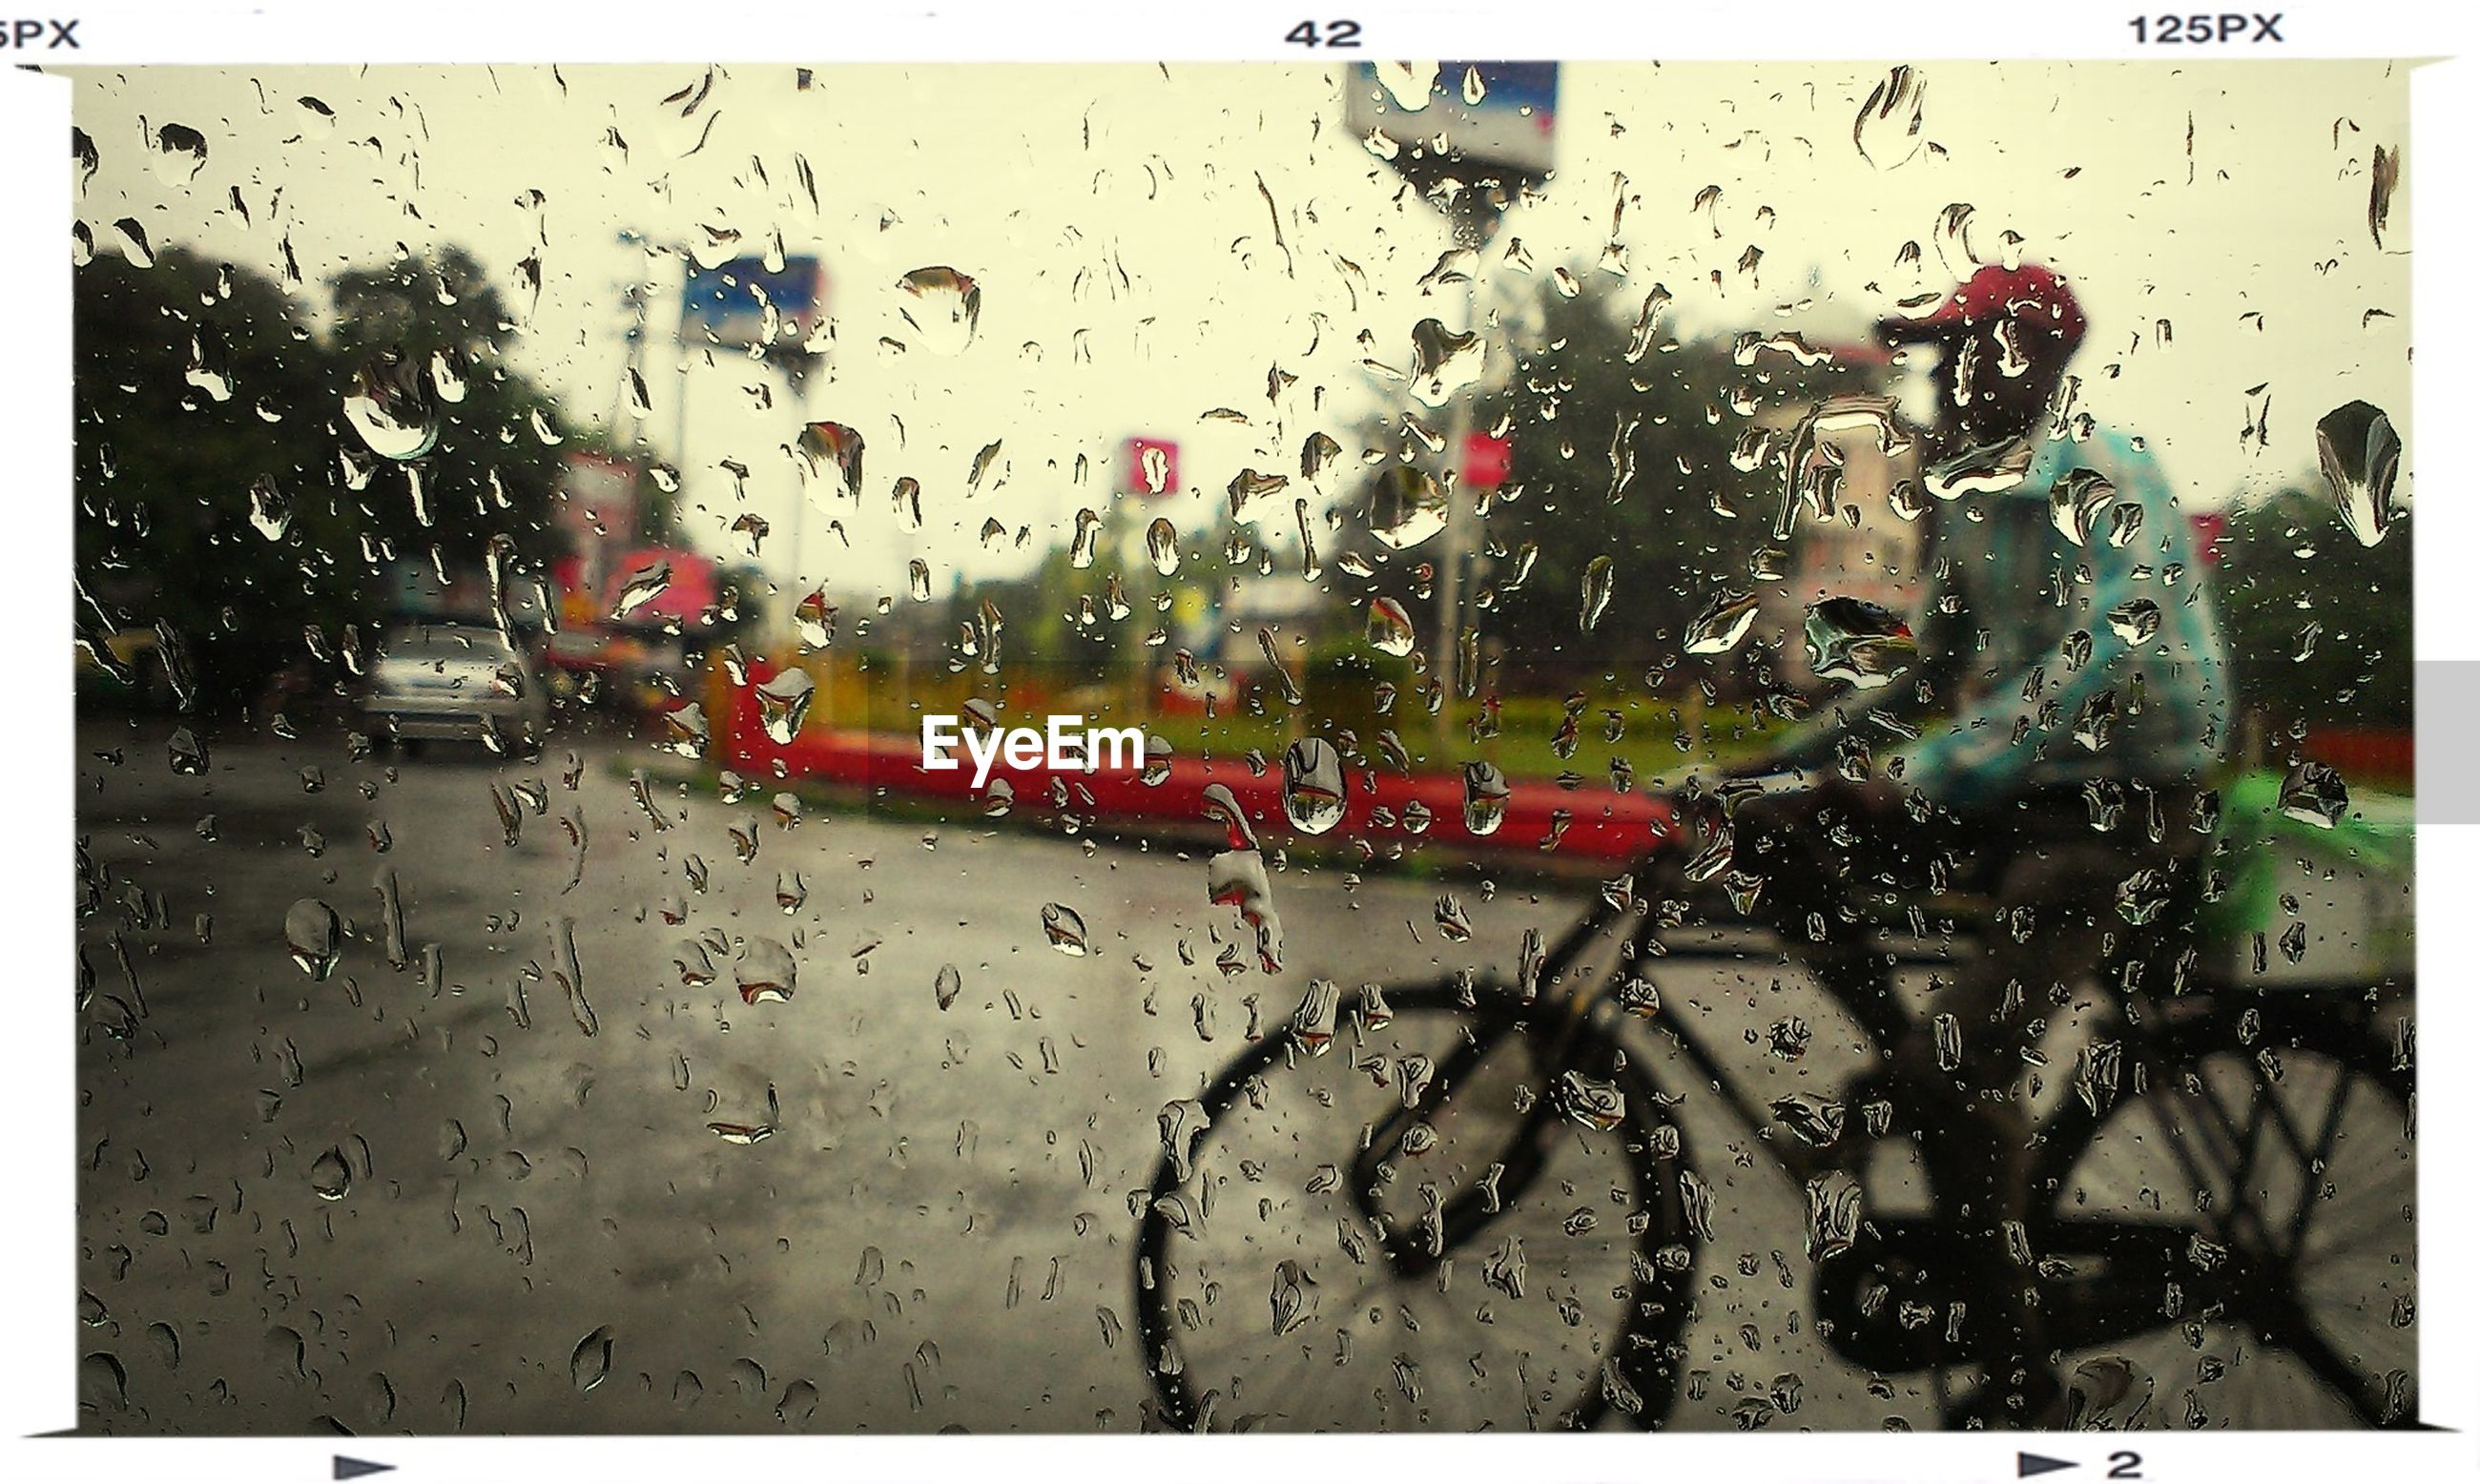 View of man cycling across waterdrops on glass